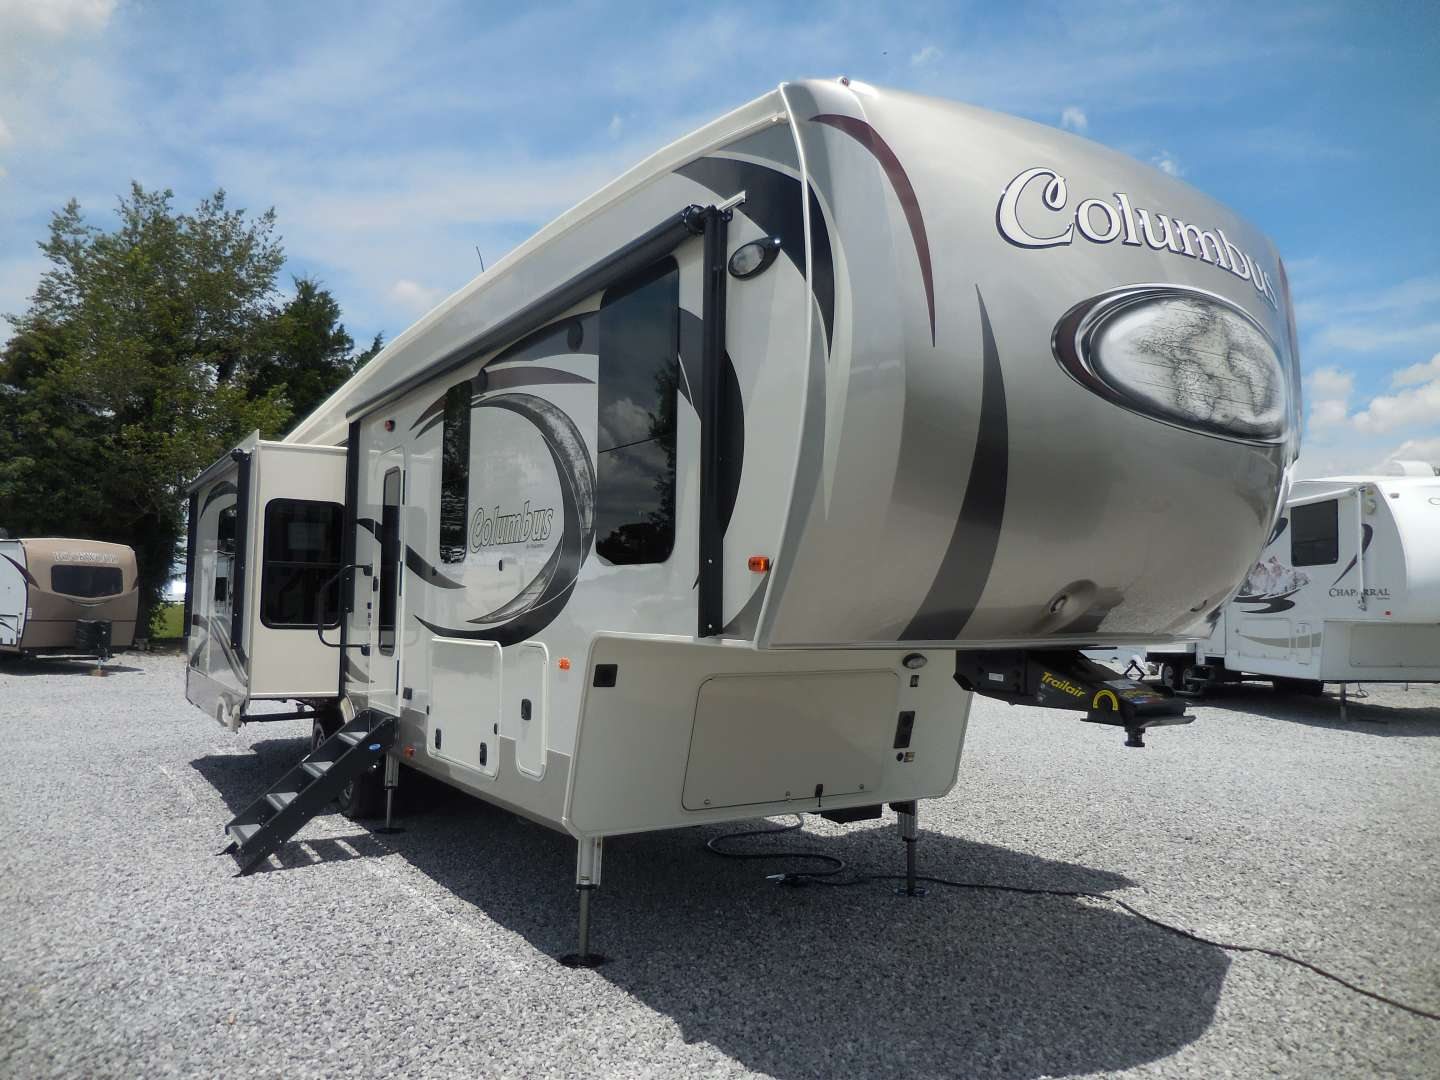 View all palomino columbus fifth wheel floorplans